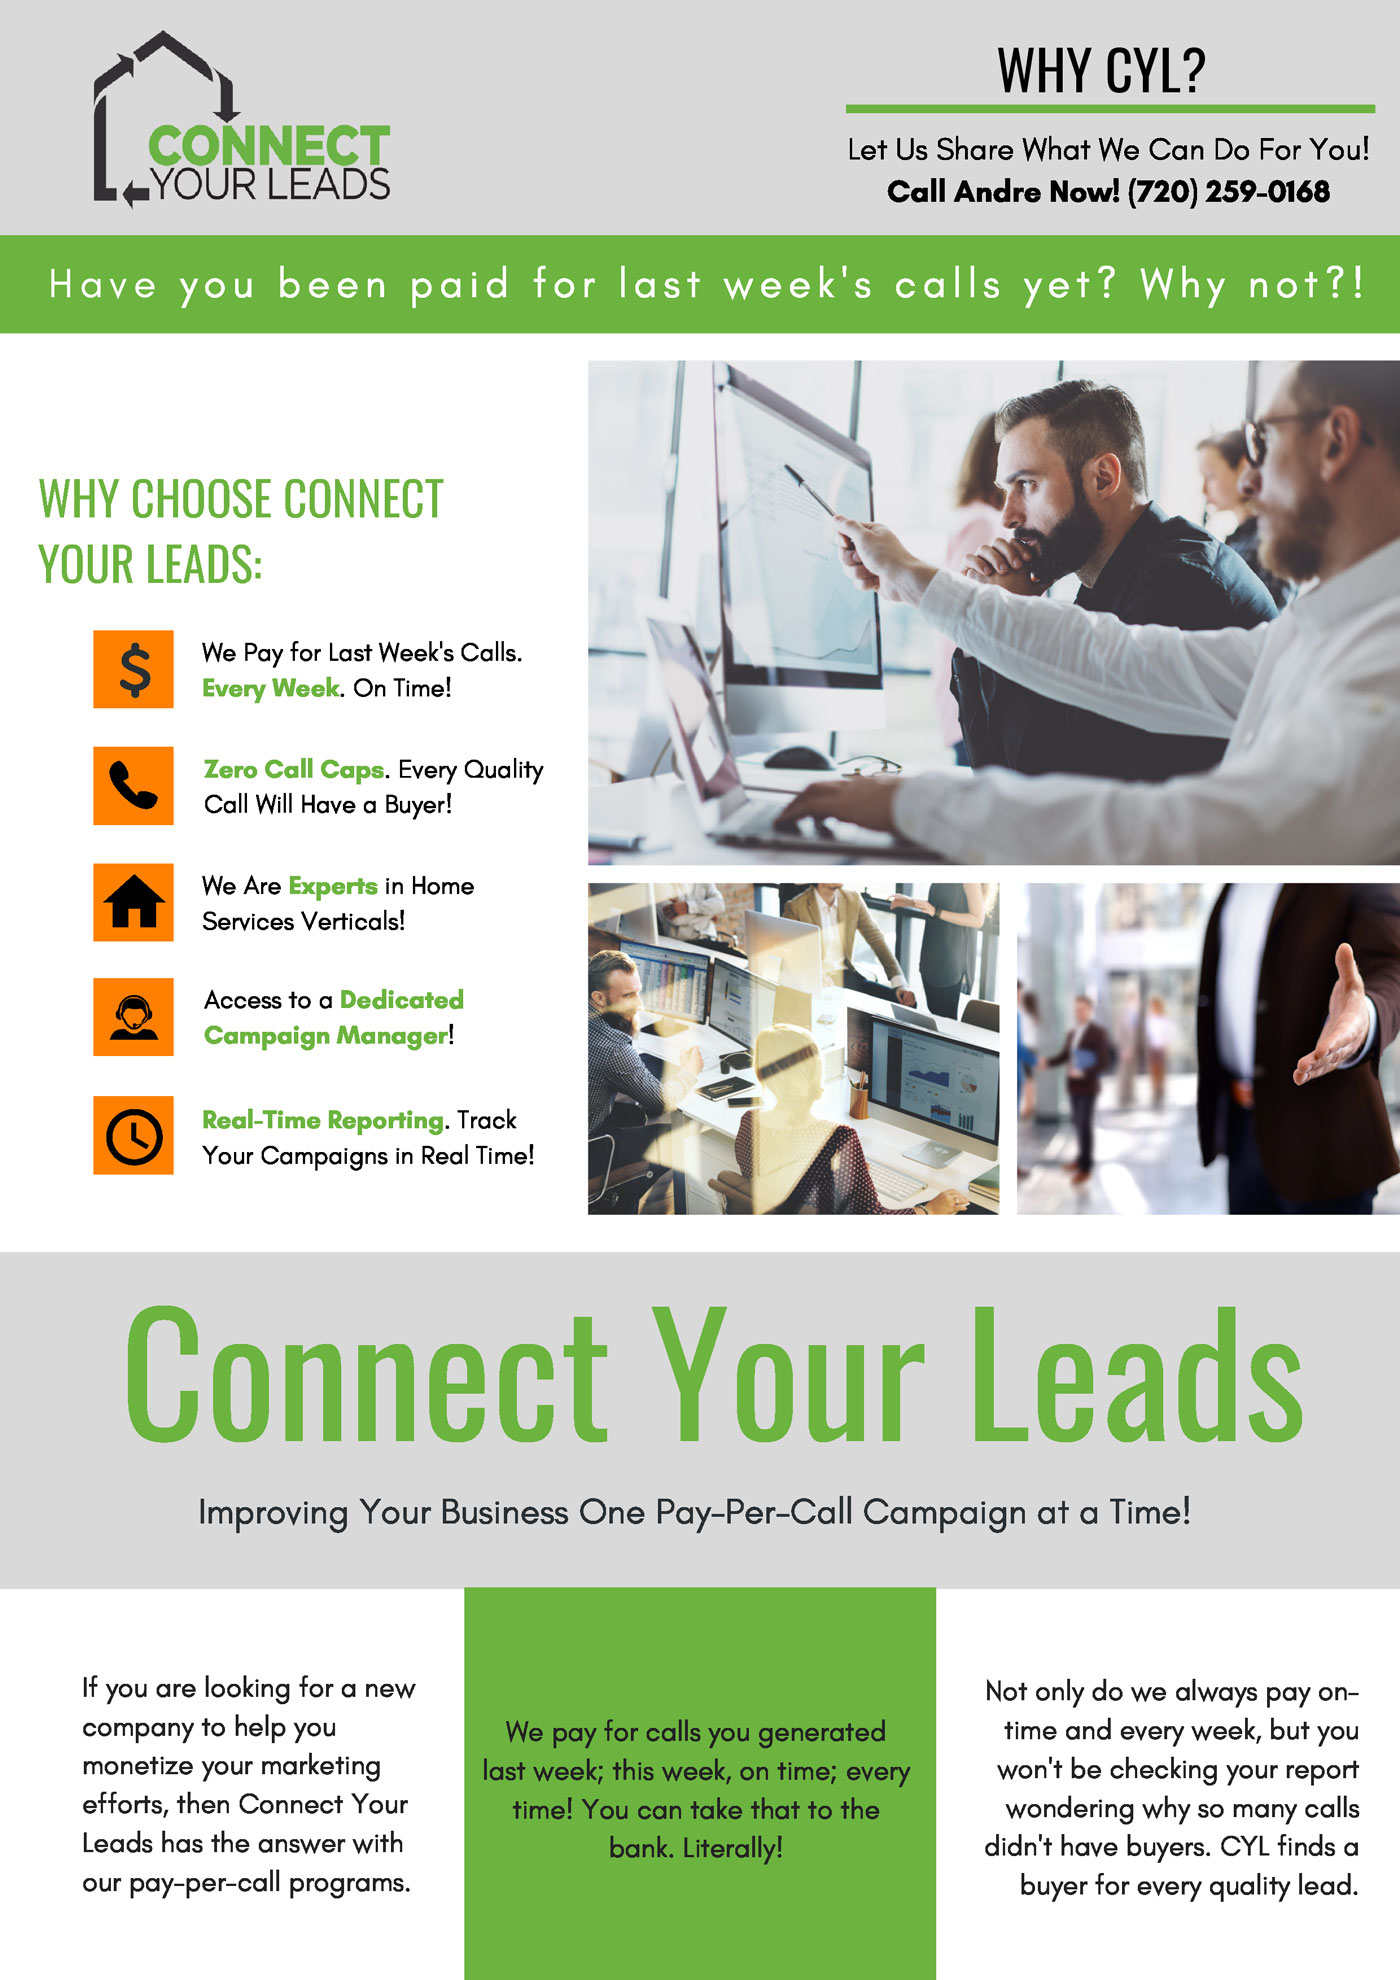 Connect Your Leads Benefits